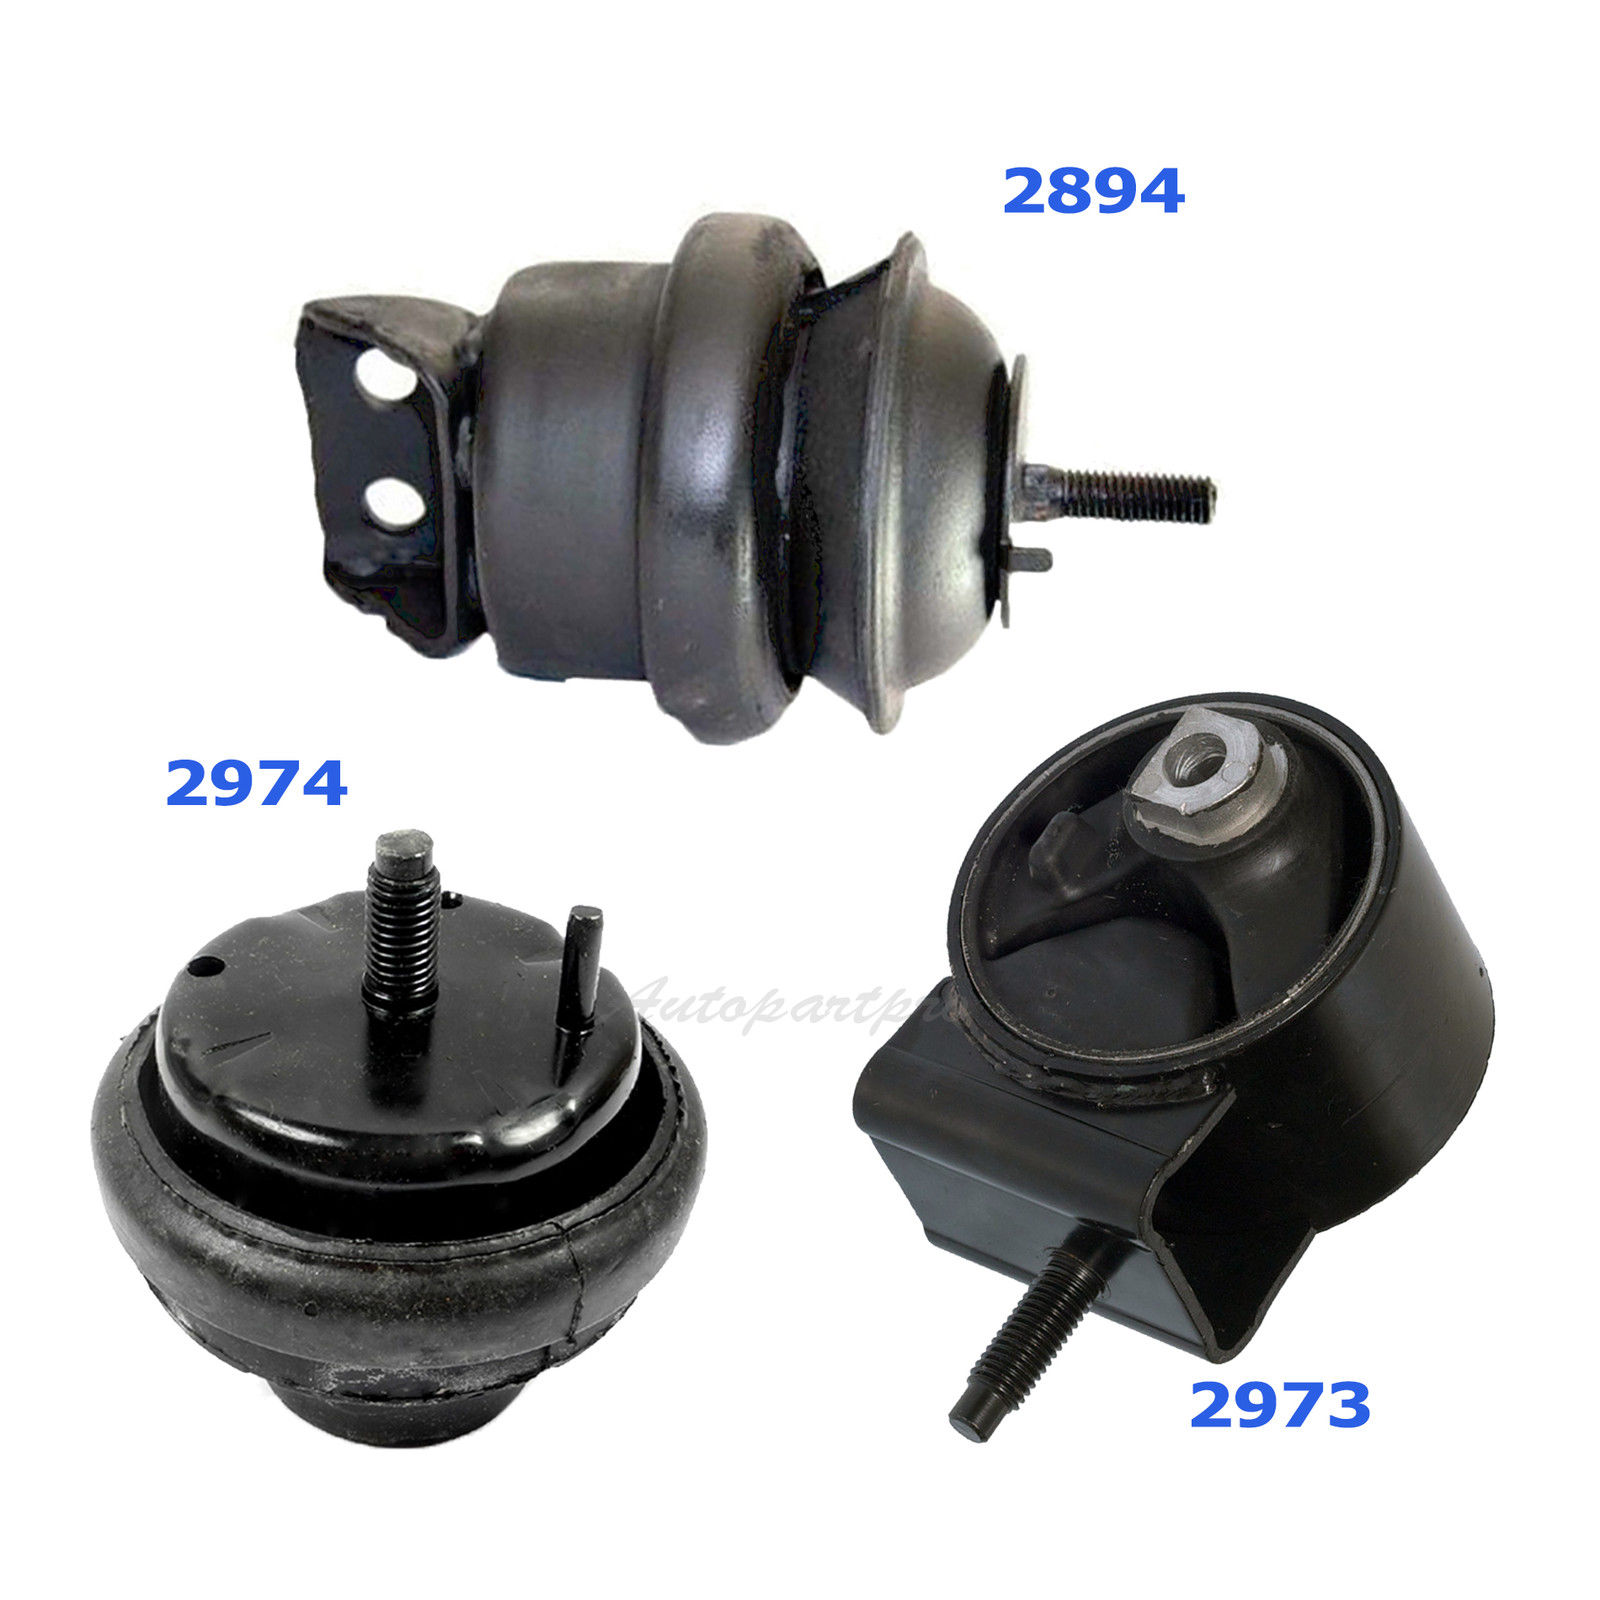 Motor /& Trans Mount For 2000-2003 FORD TAURUS 3.0L 2872 2973 2974 2894 M1396